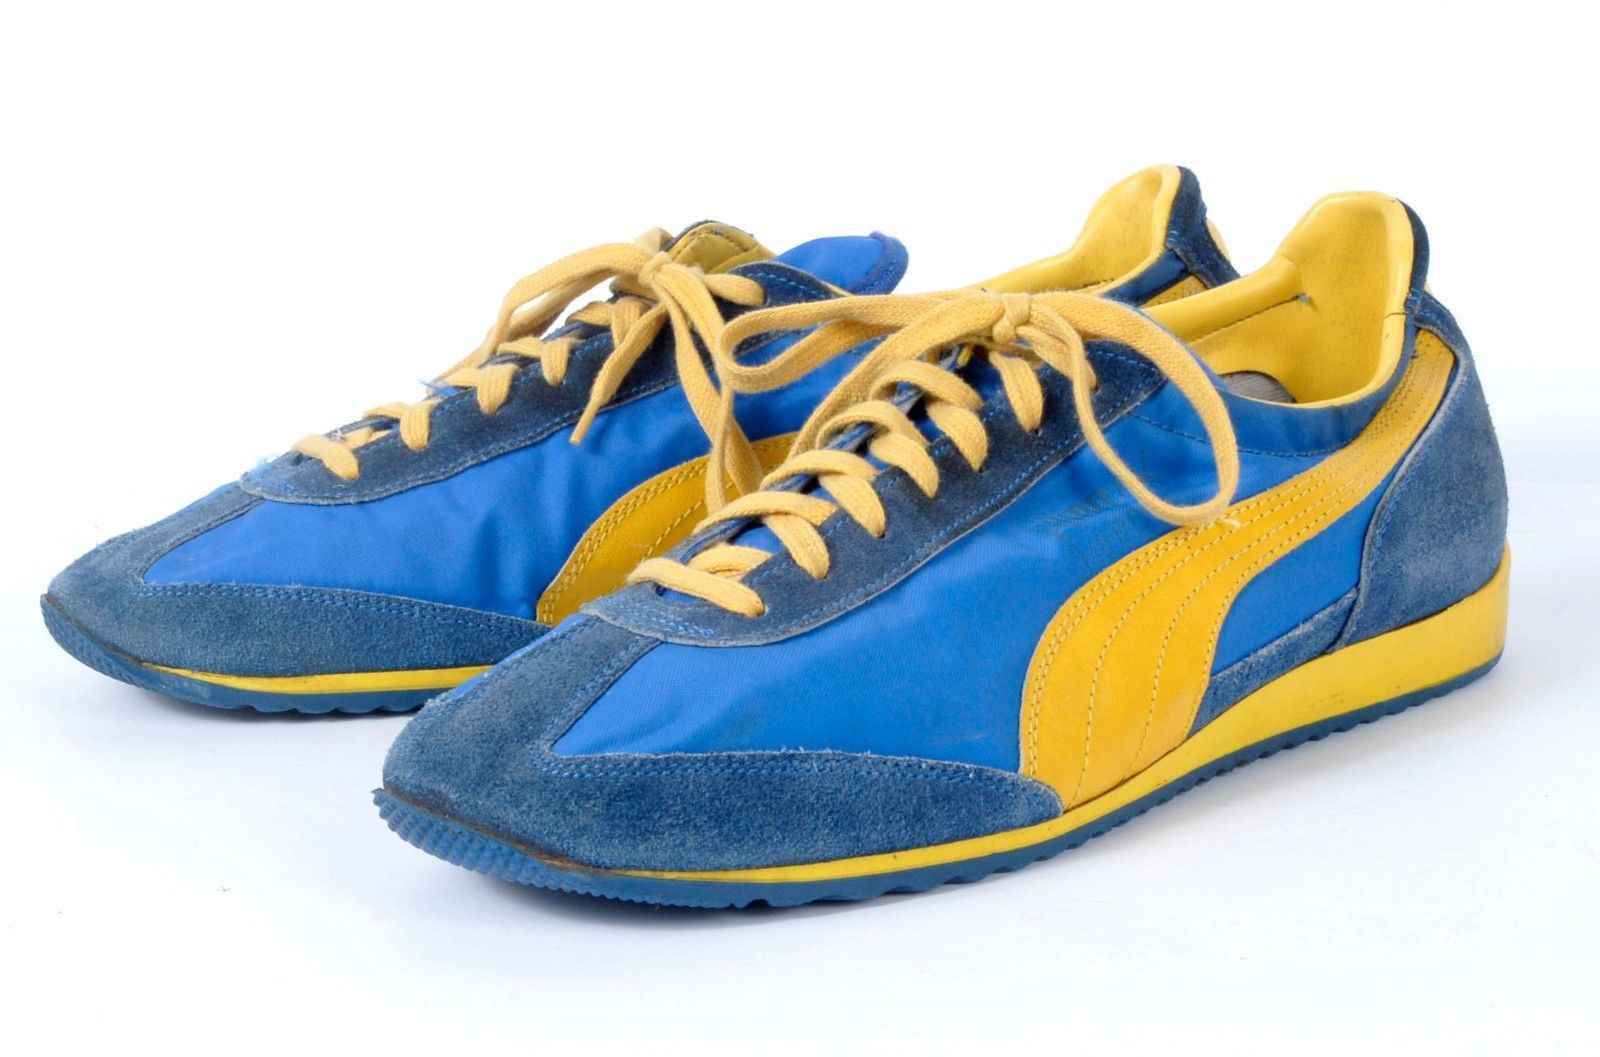 370a8db84d Vintage 70s Puma Cyclone Running Sneakers Blue & Yellow | The ...